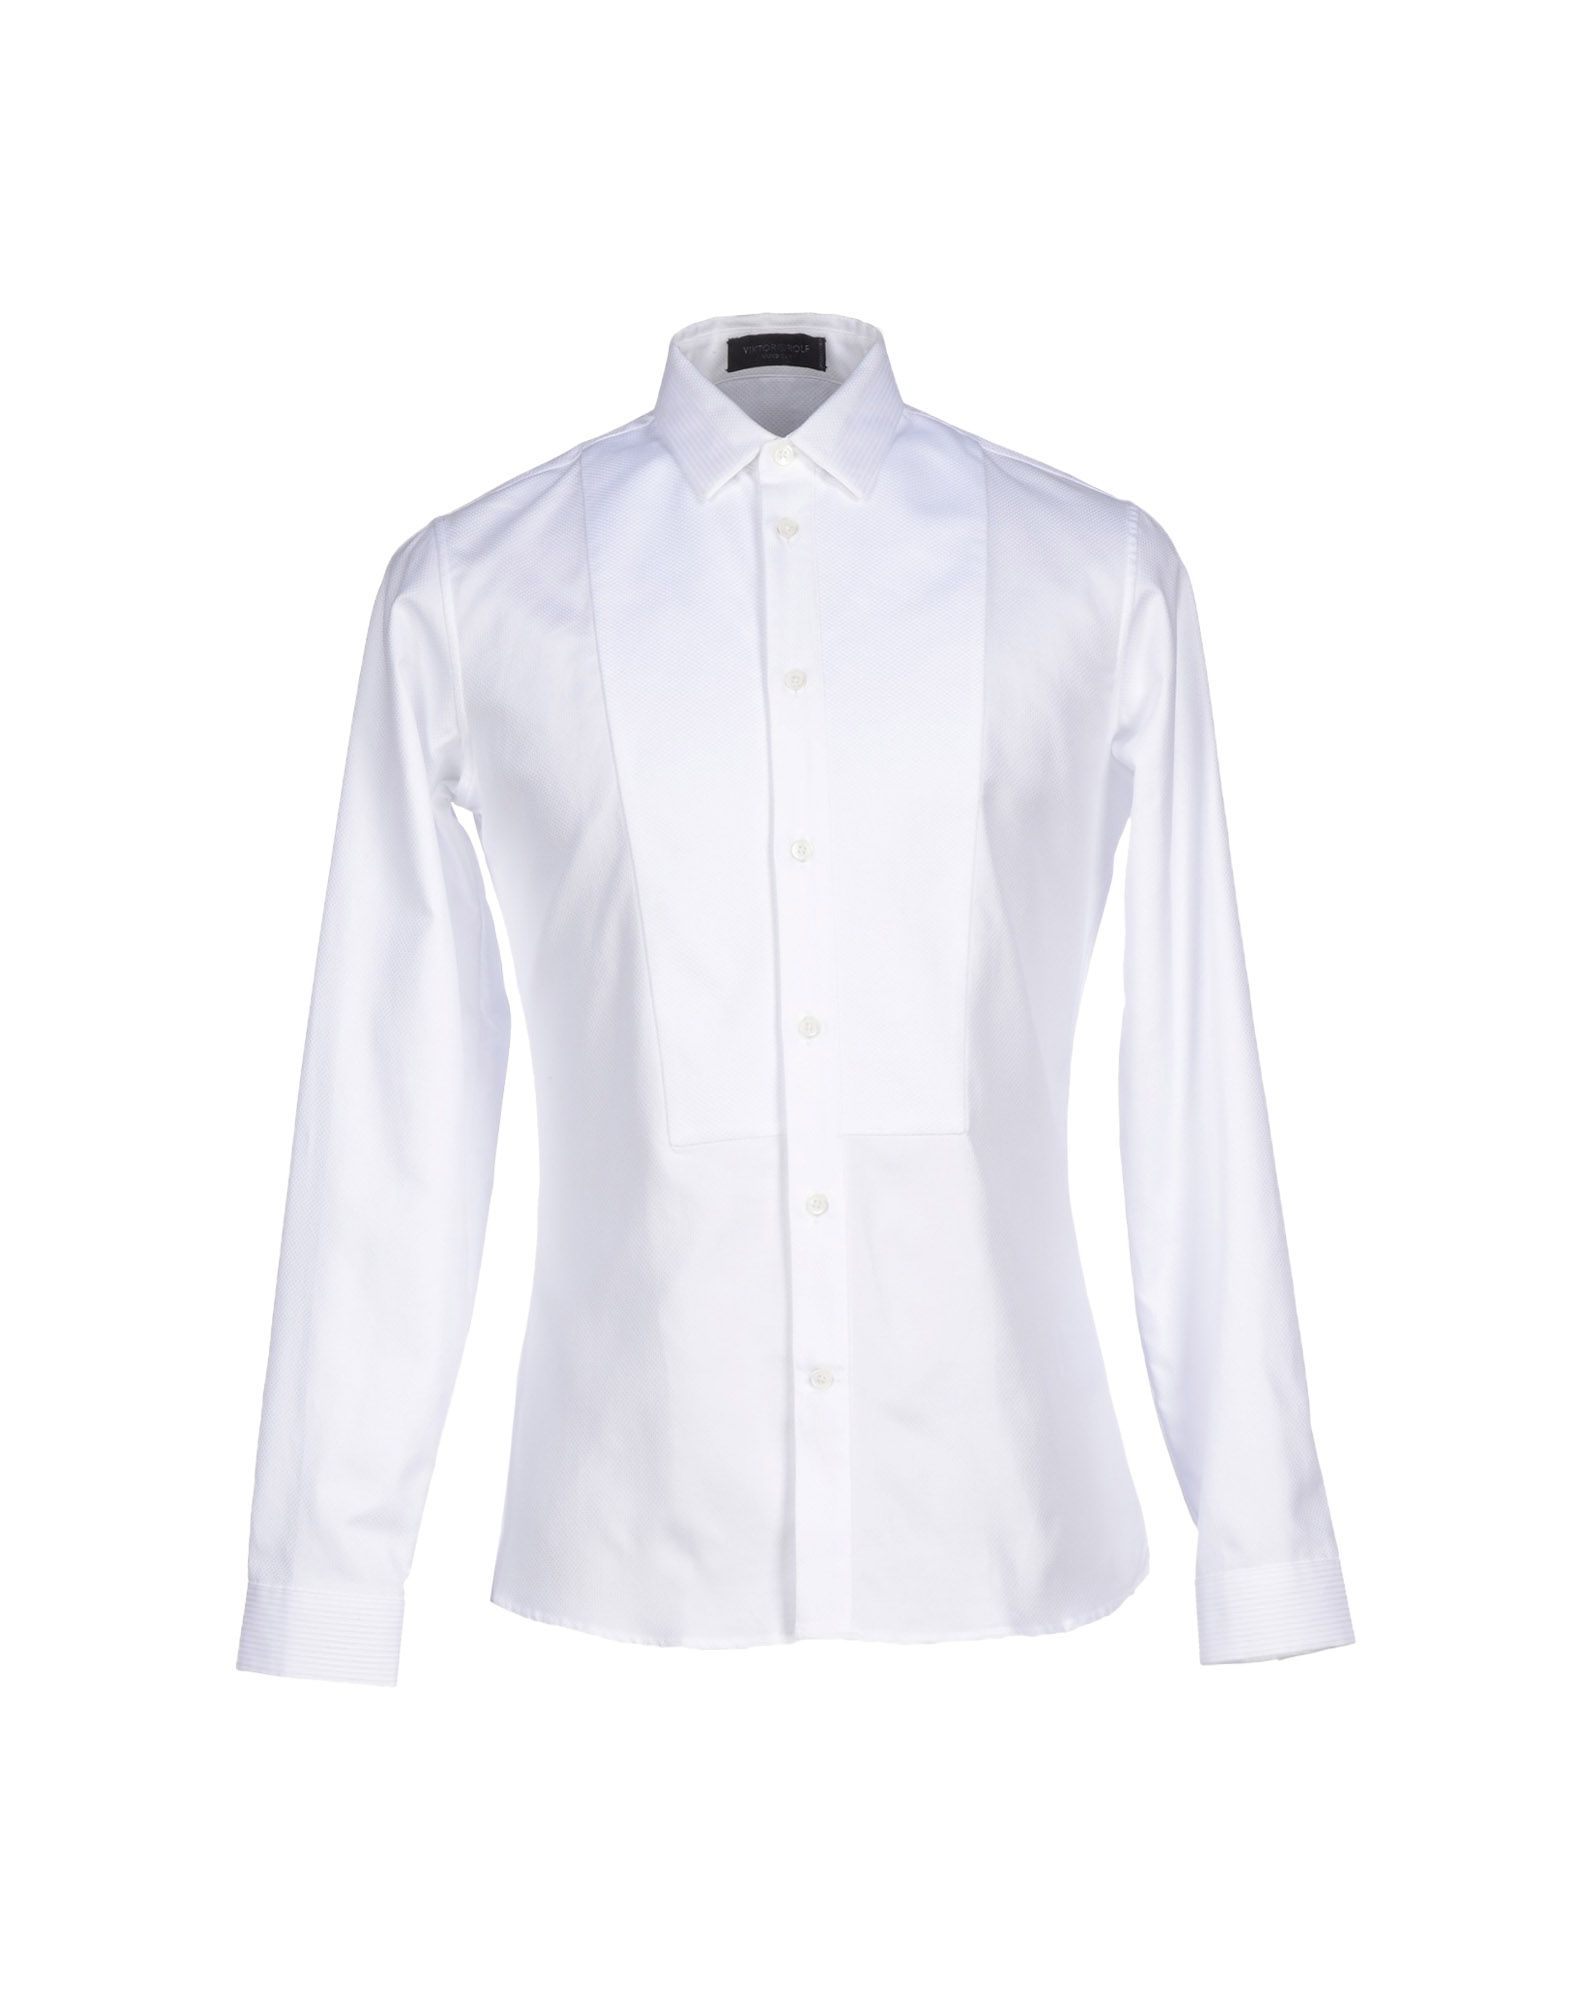 Viktor & rolf Shirt in White for Men